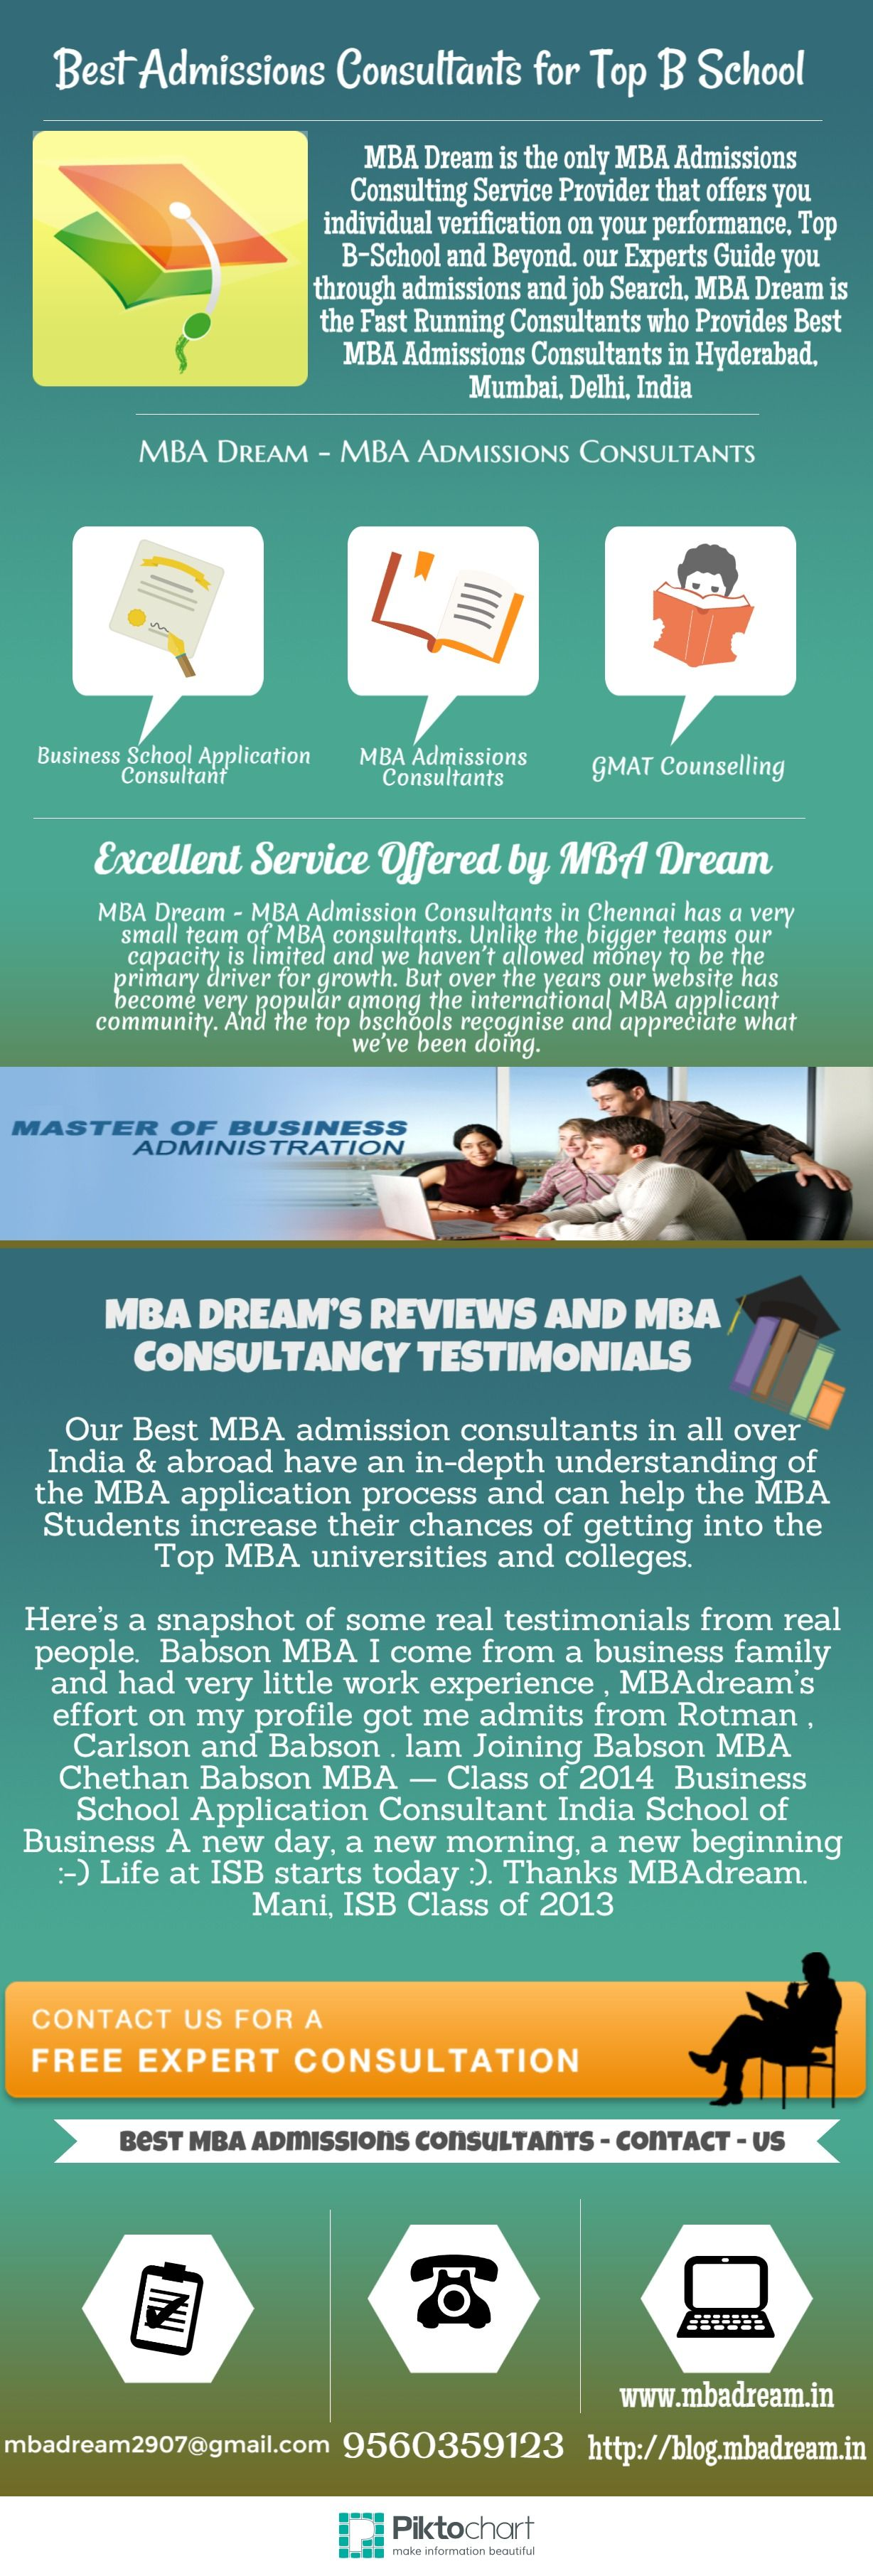 17 best images about best admission consultants for top b school 17 best images about best admission consultants for top b school on hyderabad schools in and mumbai